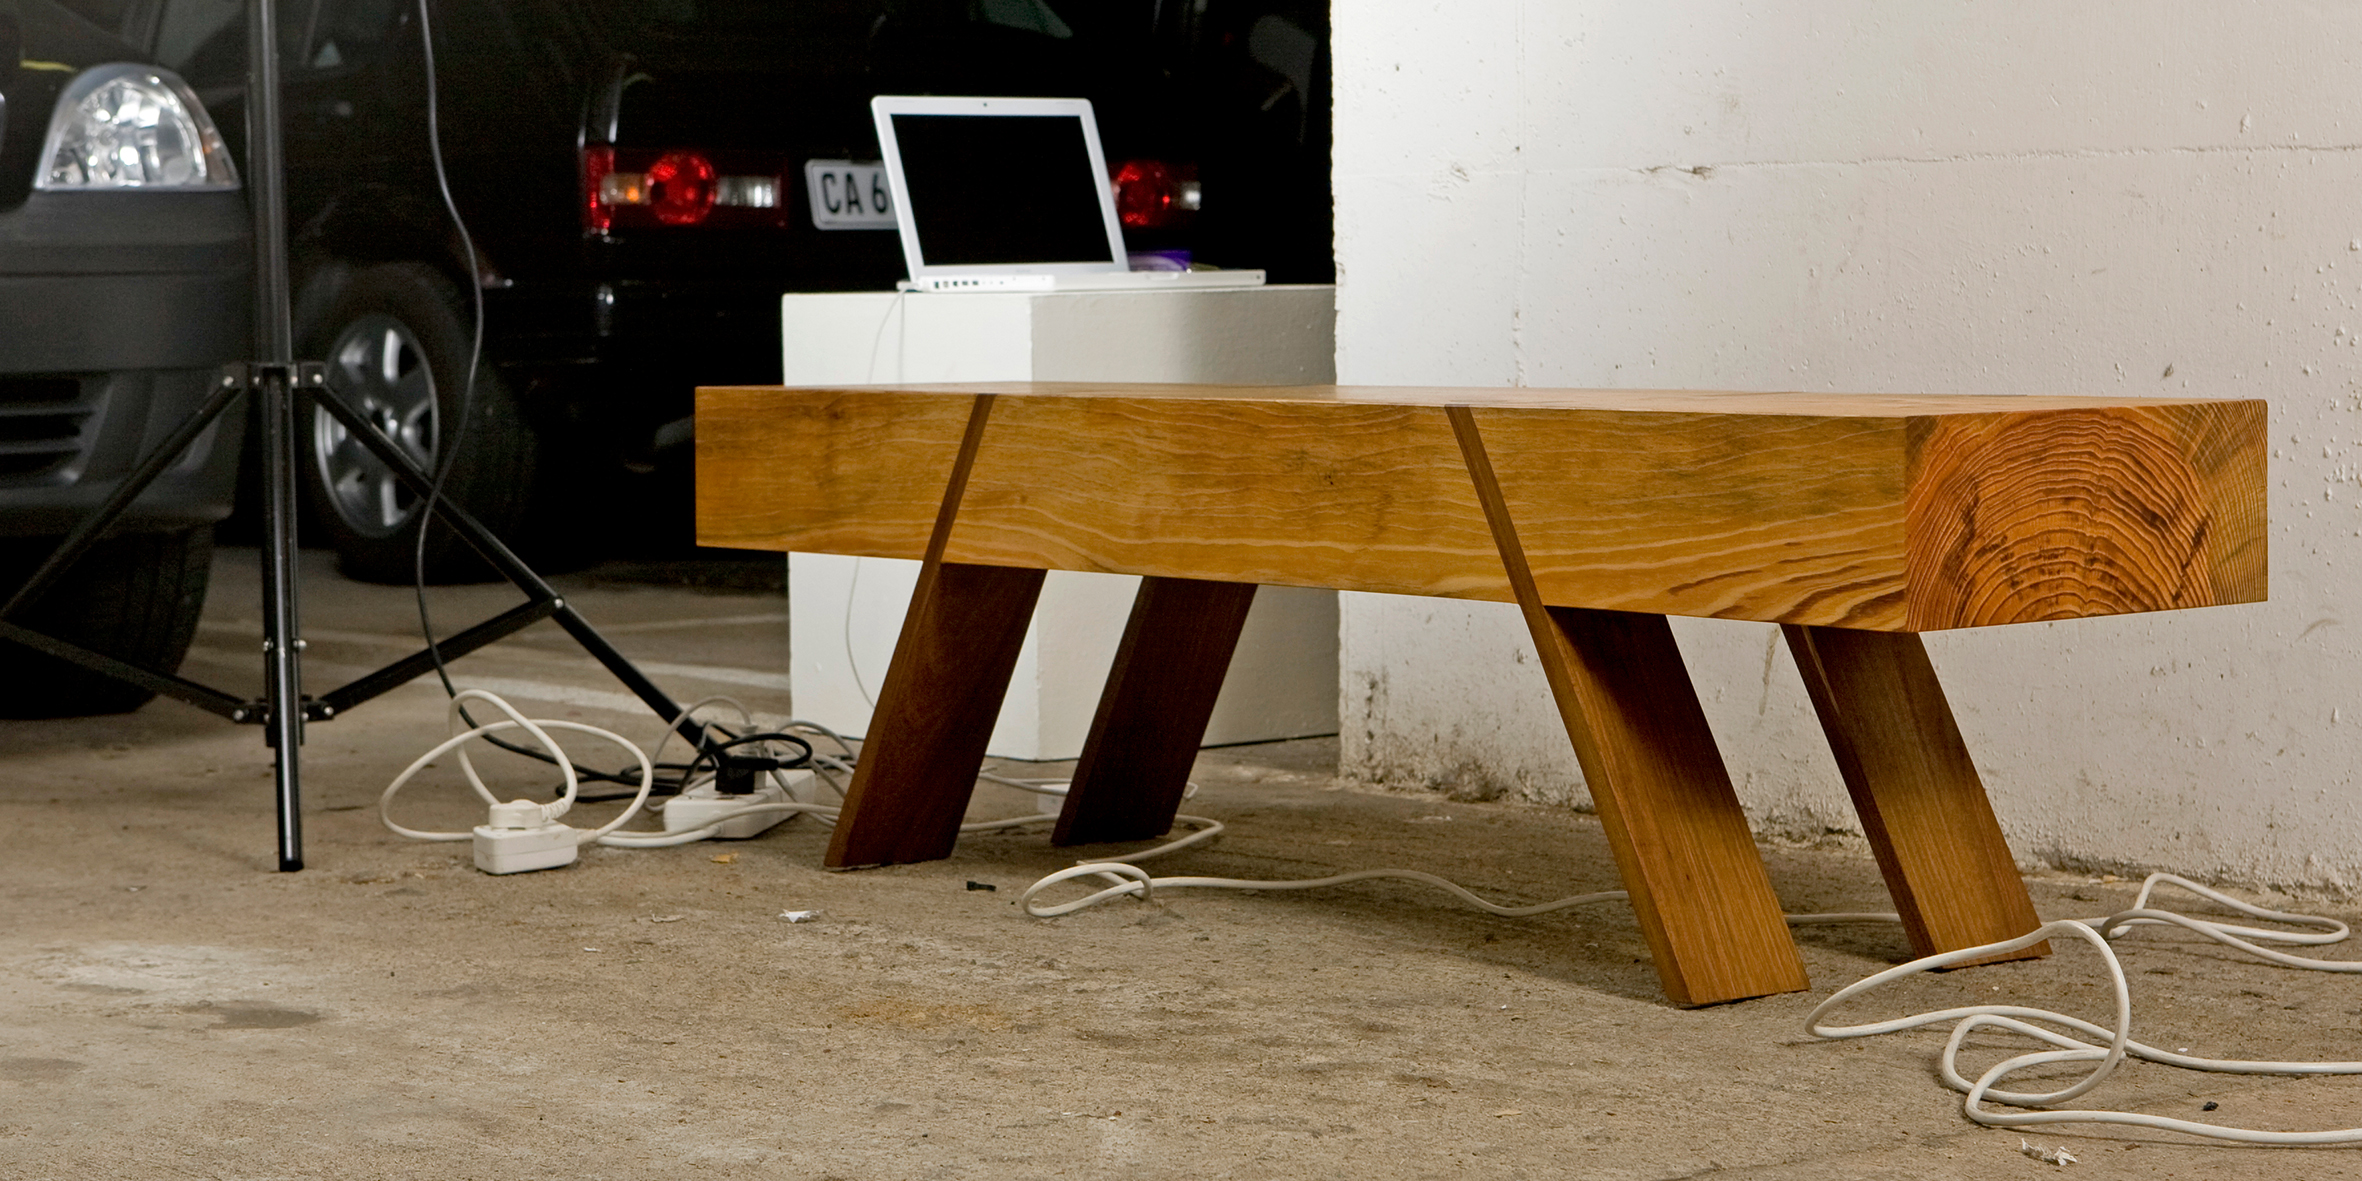 dave bench, 3000 l x 380 w x 400 h, stone pine beam with jarrah feet